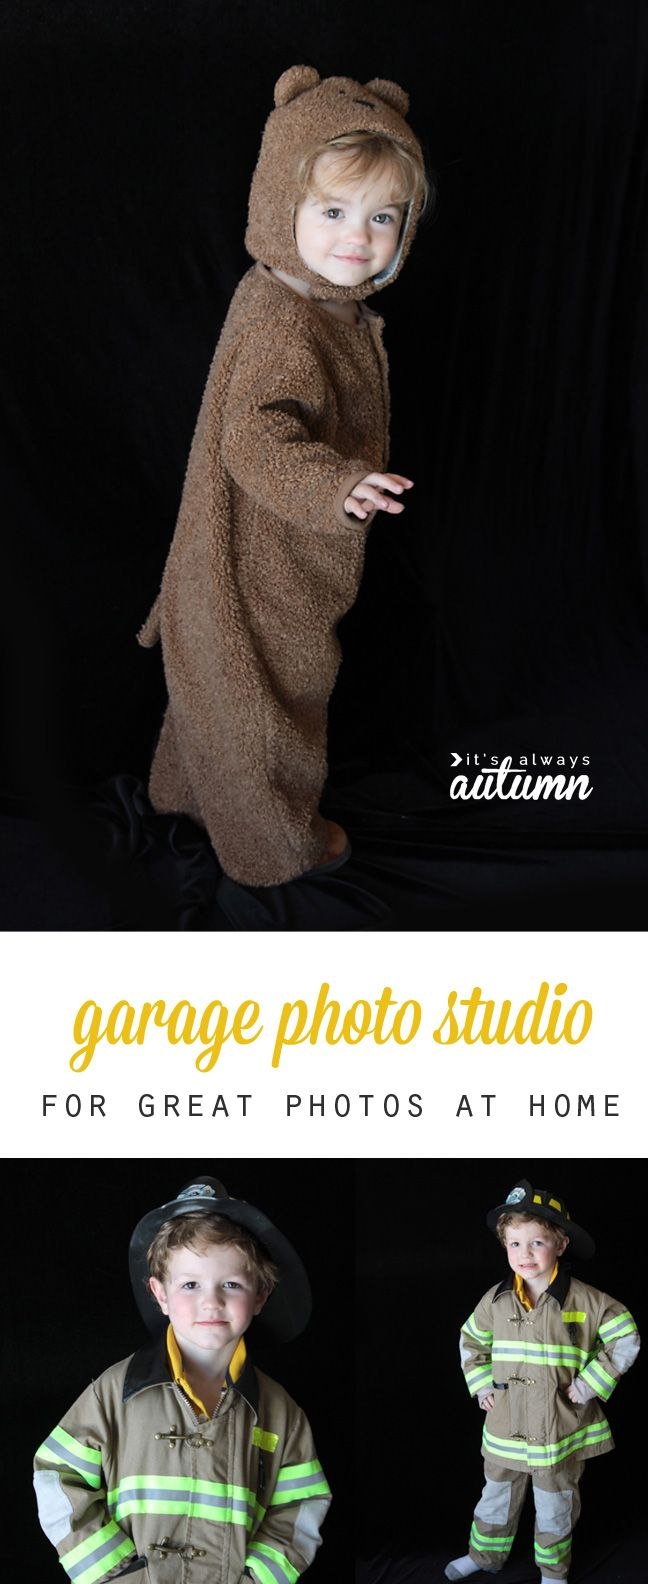 This post shows you how to set up a super simple DIY garage photo studio so you can get great pictures of your kids at home! It's perfect for taking pictures of kids in costumes on Halloween.